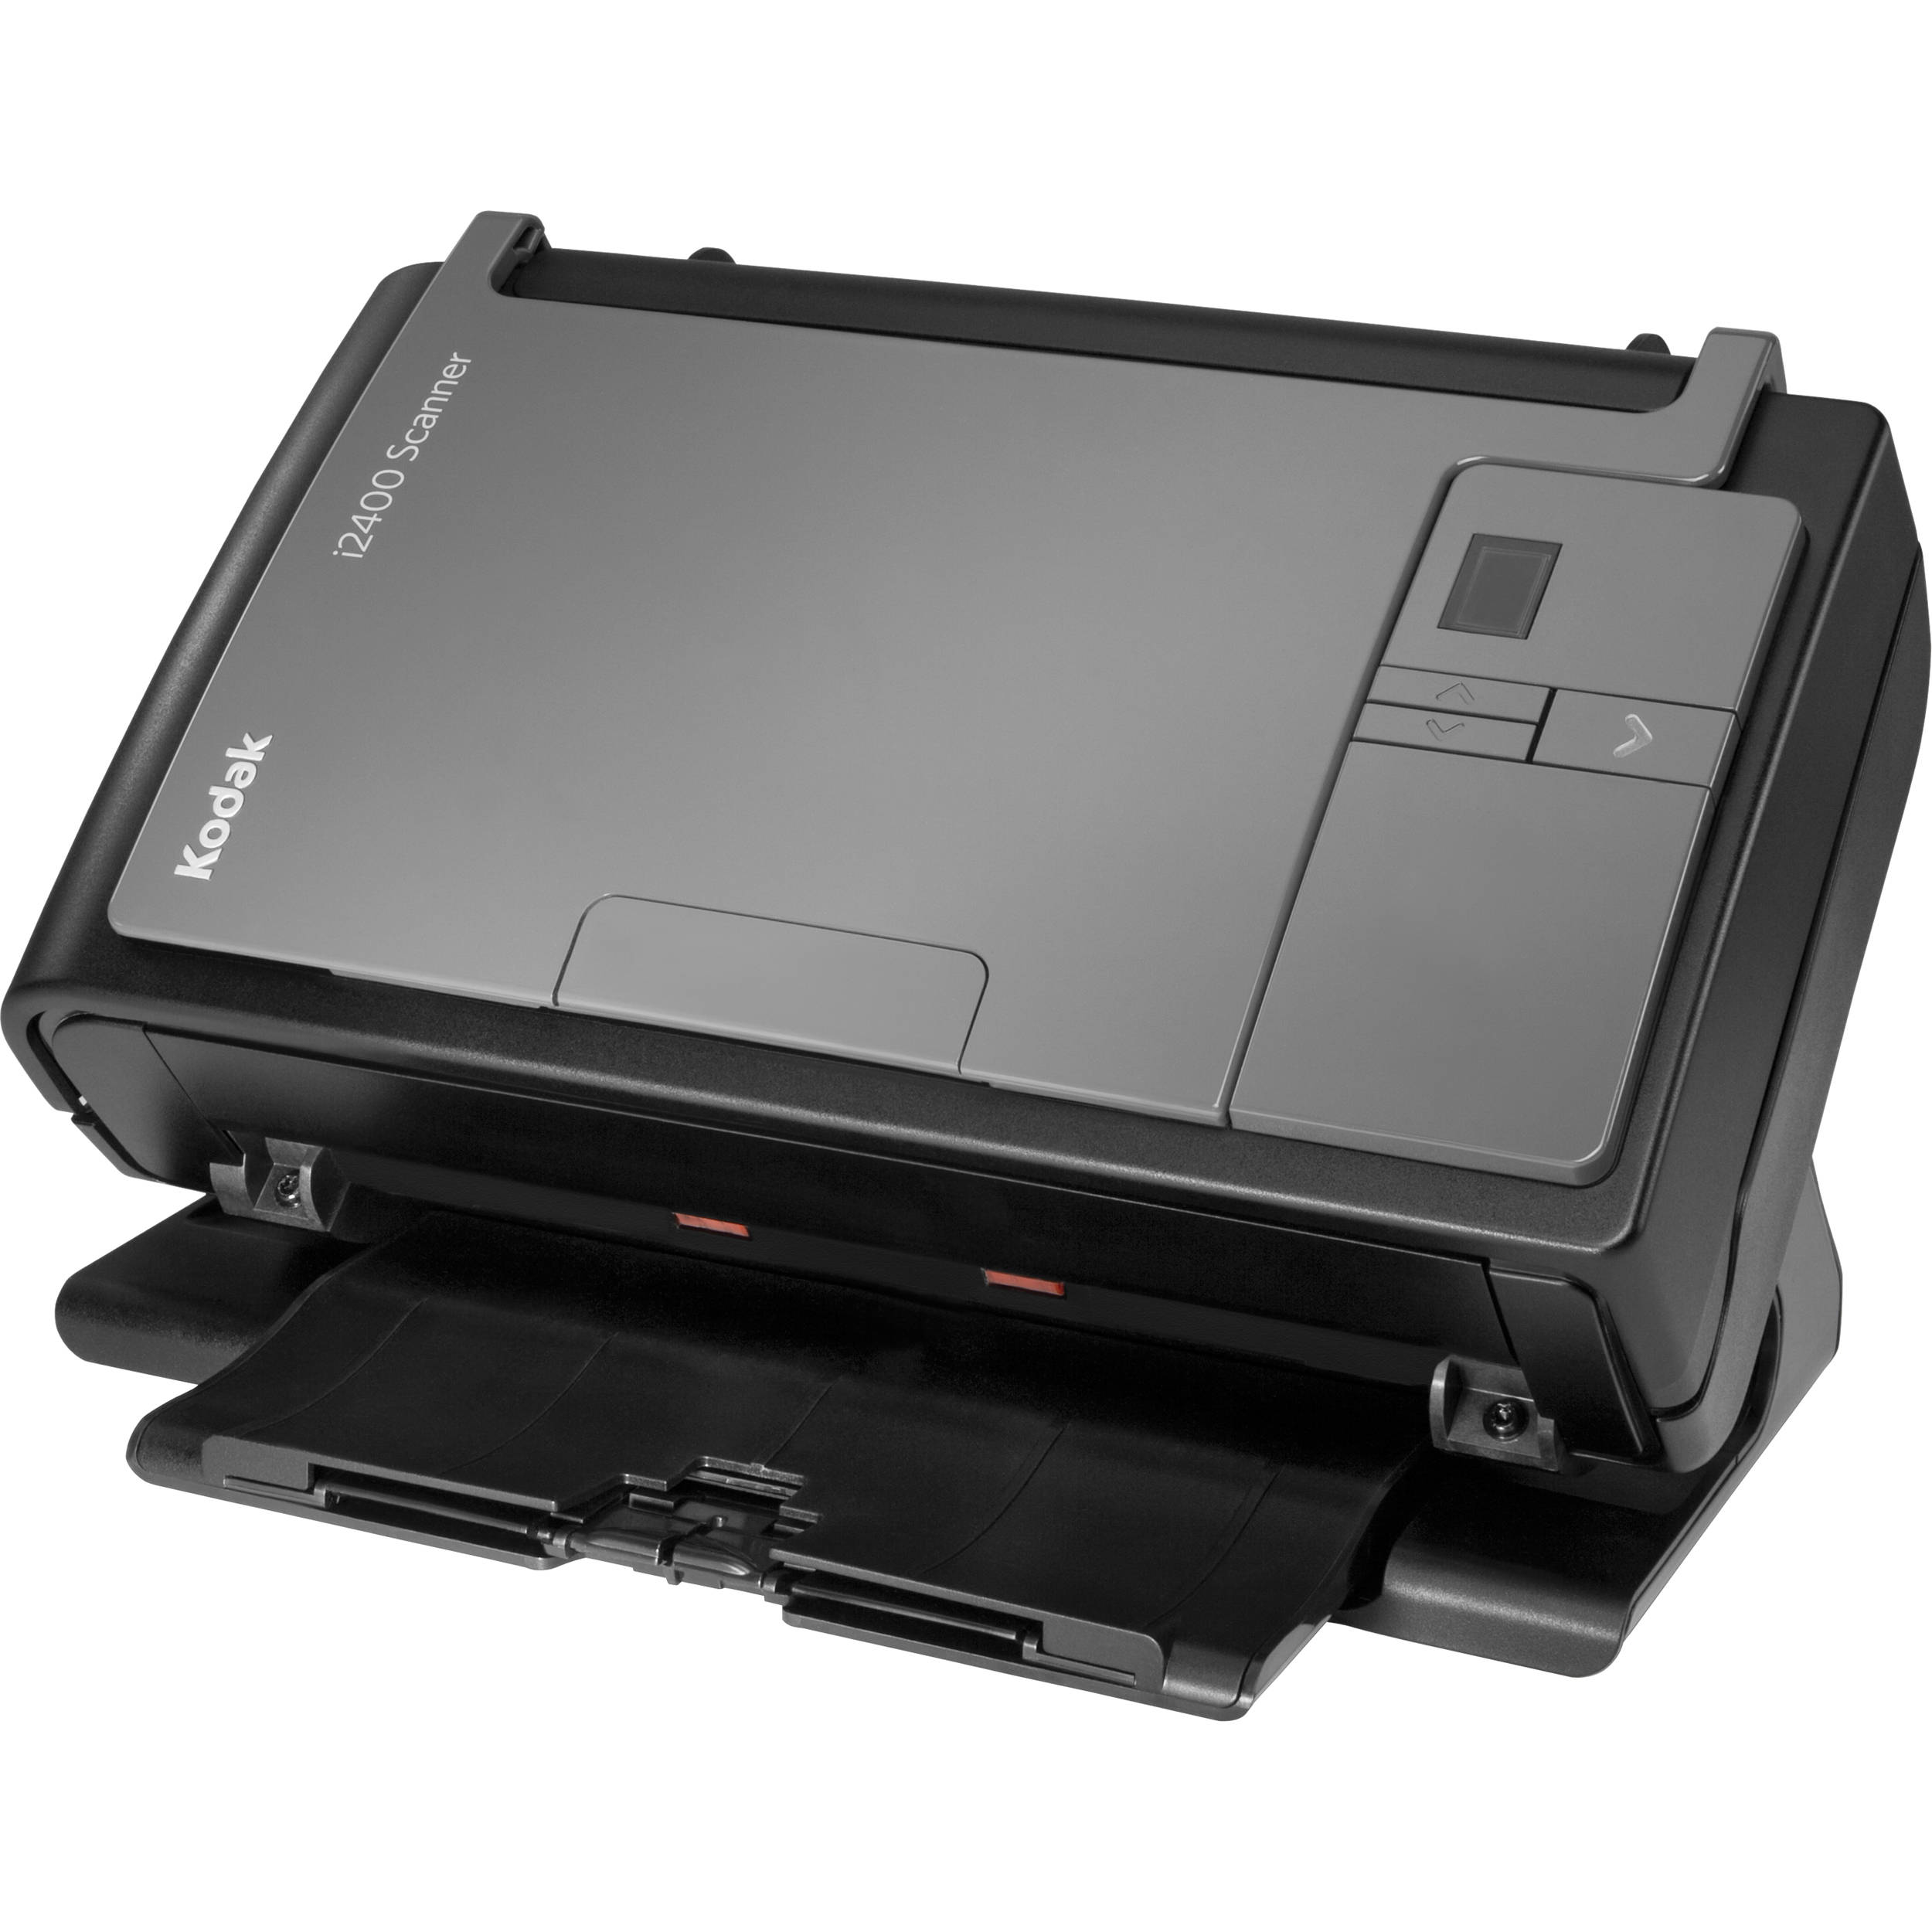 KODAK I2600 SCANNER WINDOWS 7 X64 DRIVER